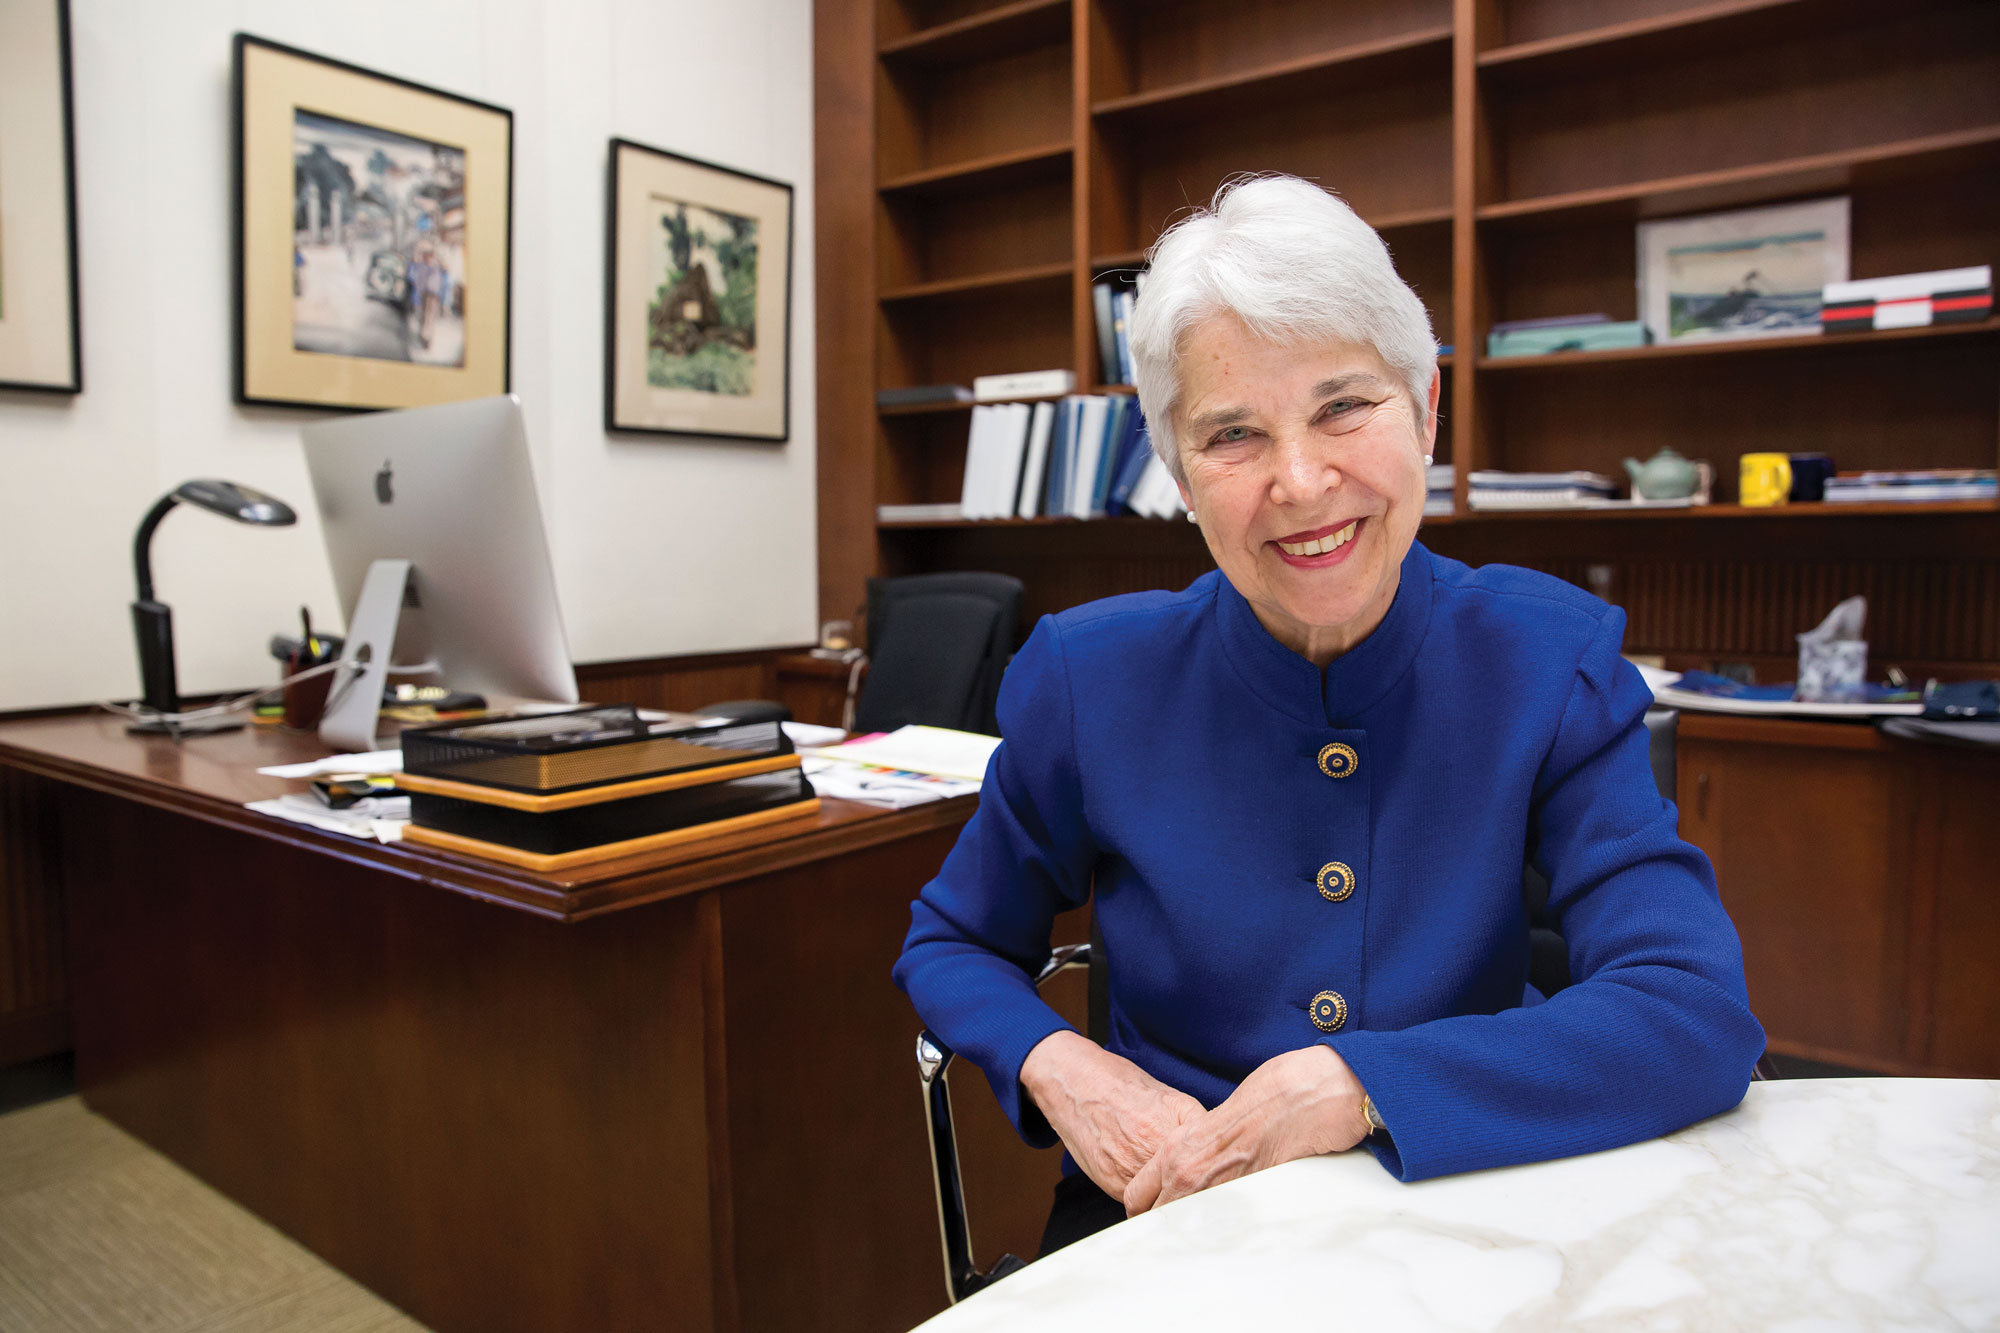 Photo of Chancellor Christ smiling at camera, sitting at her desk